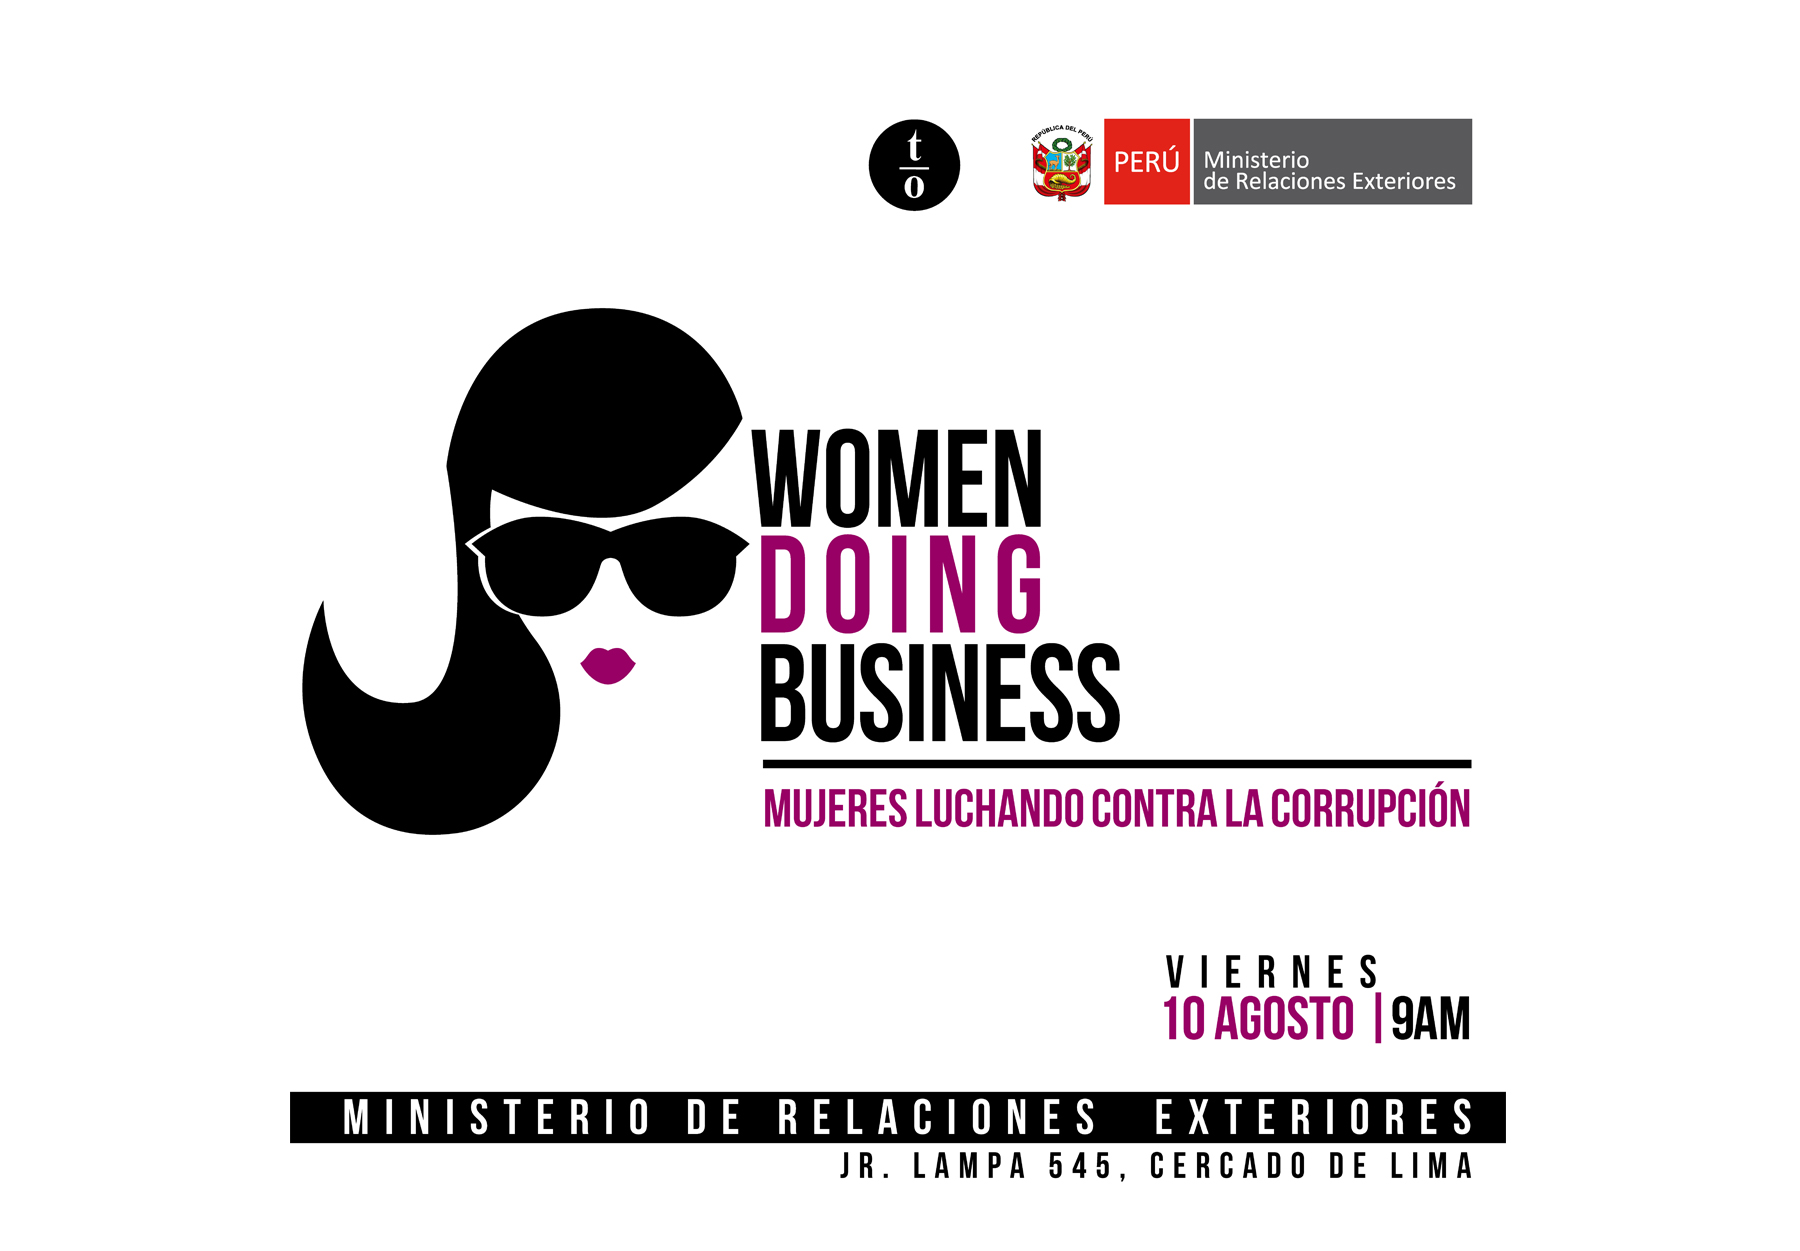 WOMEN DOING BUSINESS - mujeres luchando contra la corrupción BETA